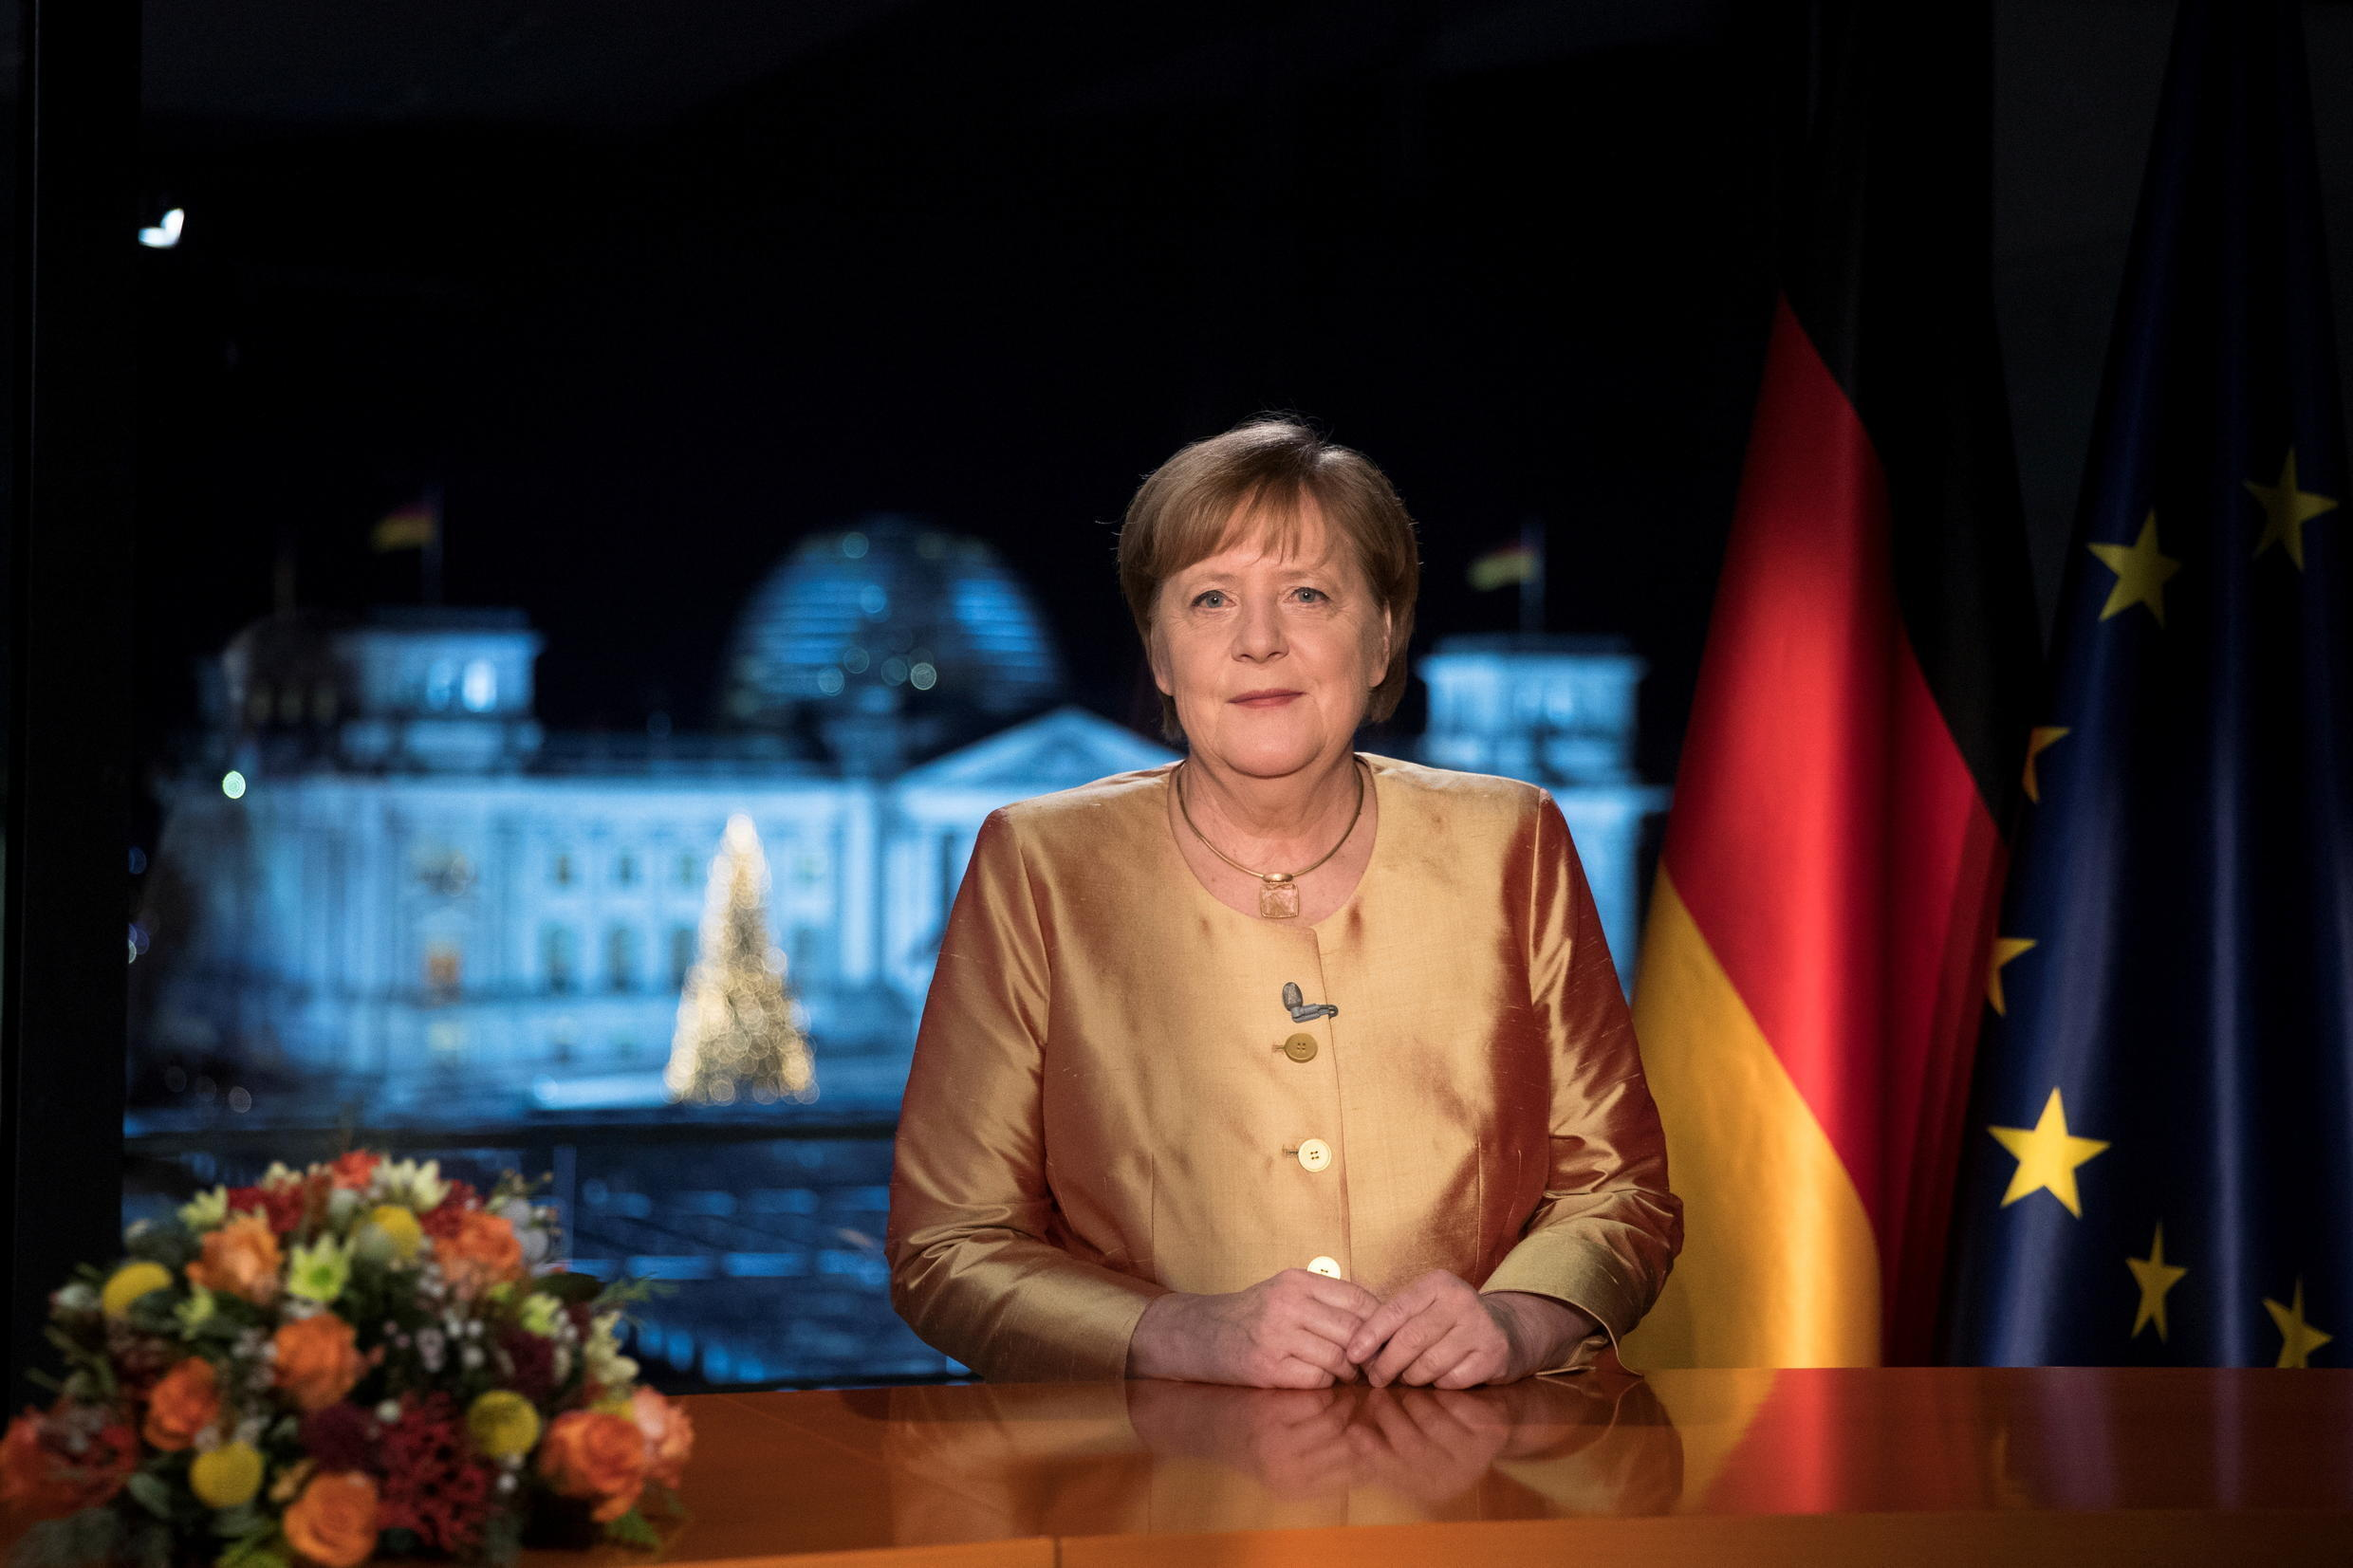 2020-12-30T230937Z_1717426819_RC2TXK94340O_RTRMADP_3_GERMANY-CHANCELLOR-NEW-YEAR